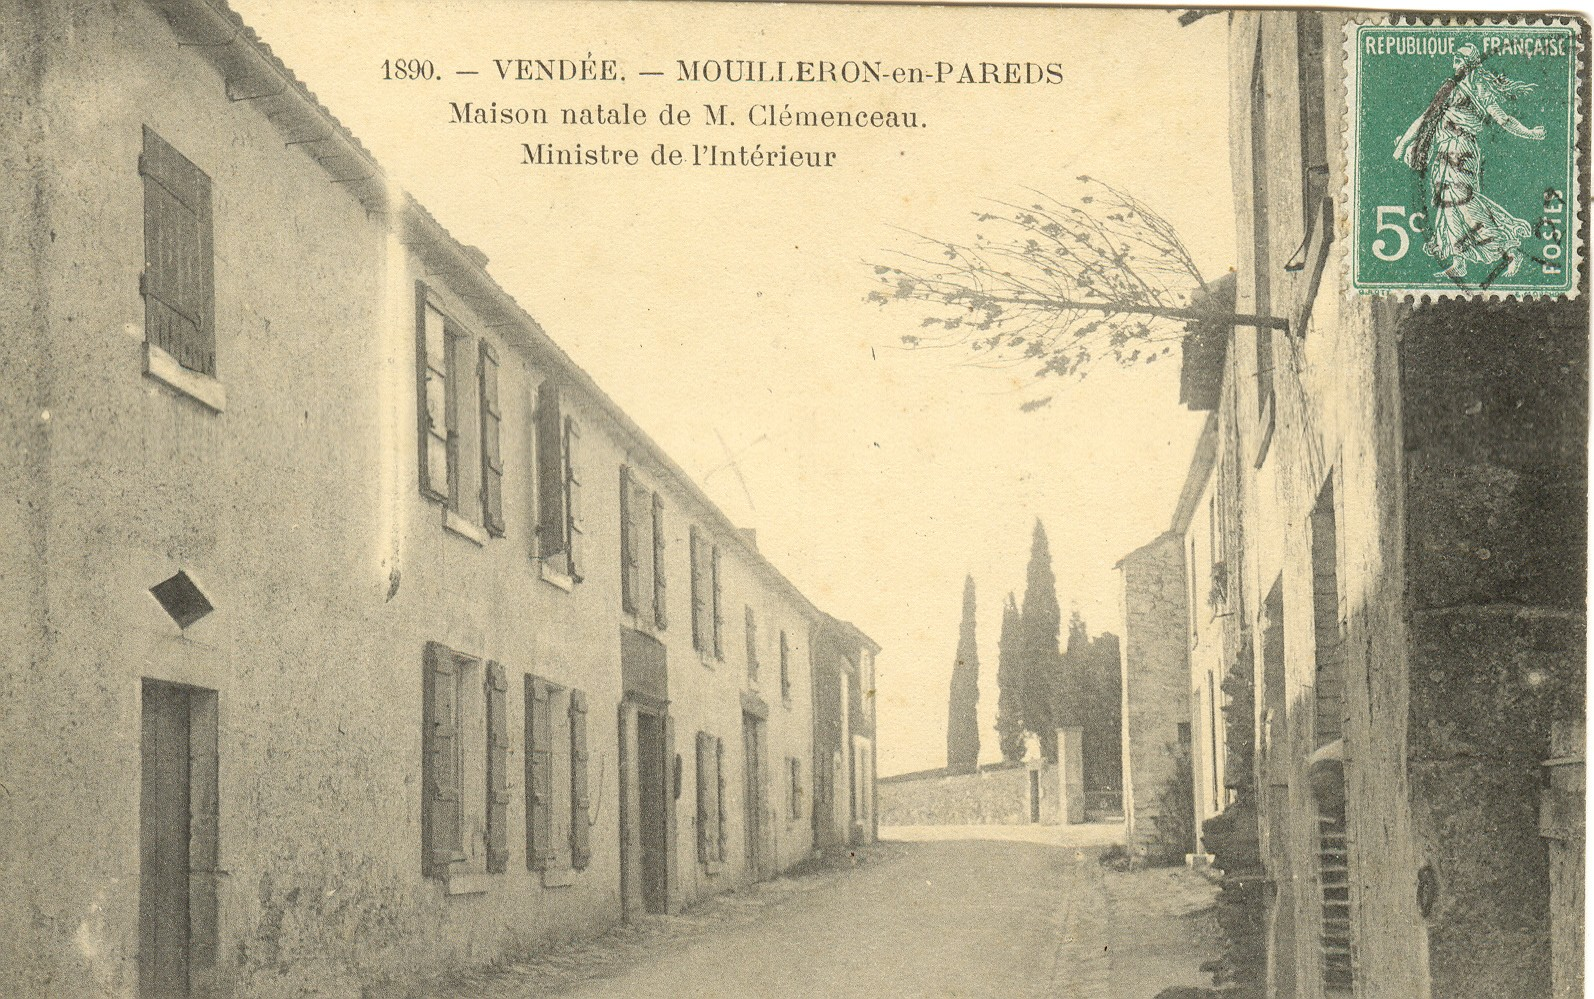 Maison natale de Georges Clemenceau à Mouilleron-en-Pareds (Vendée) © collection musee national Clemenceau-de Lattre